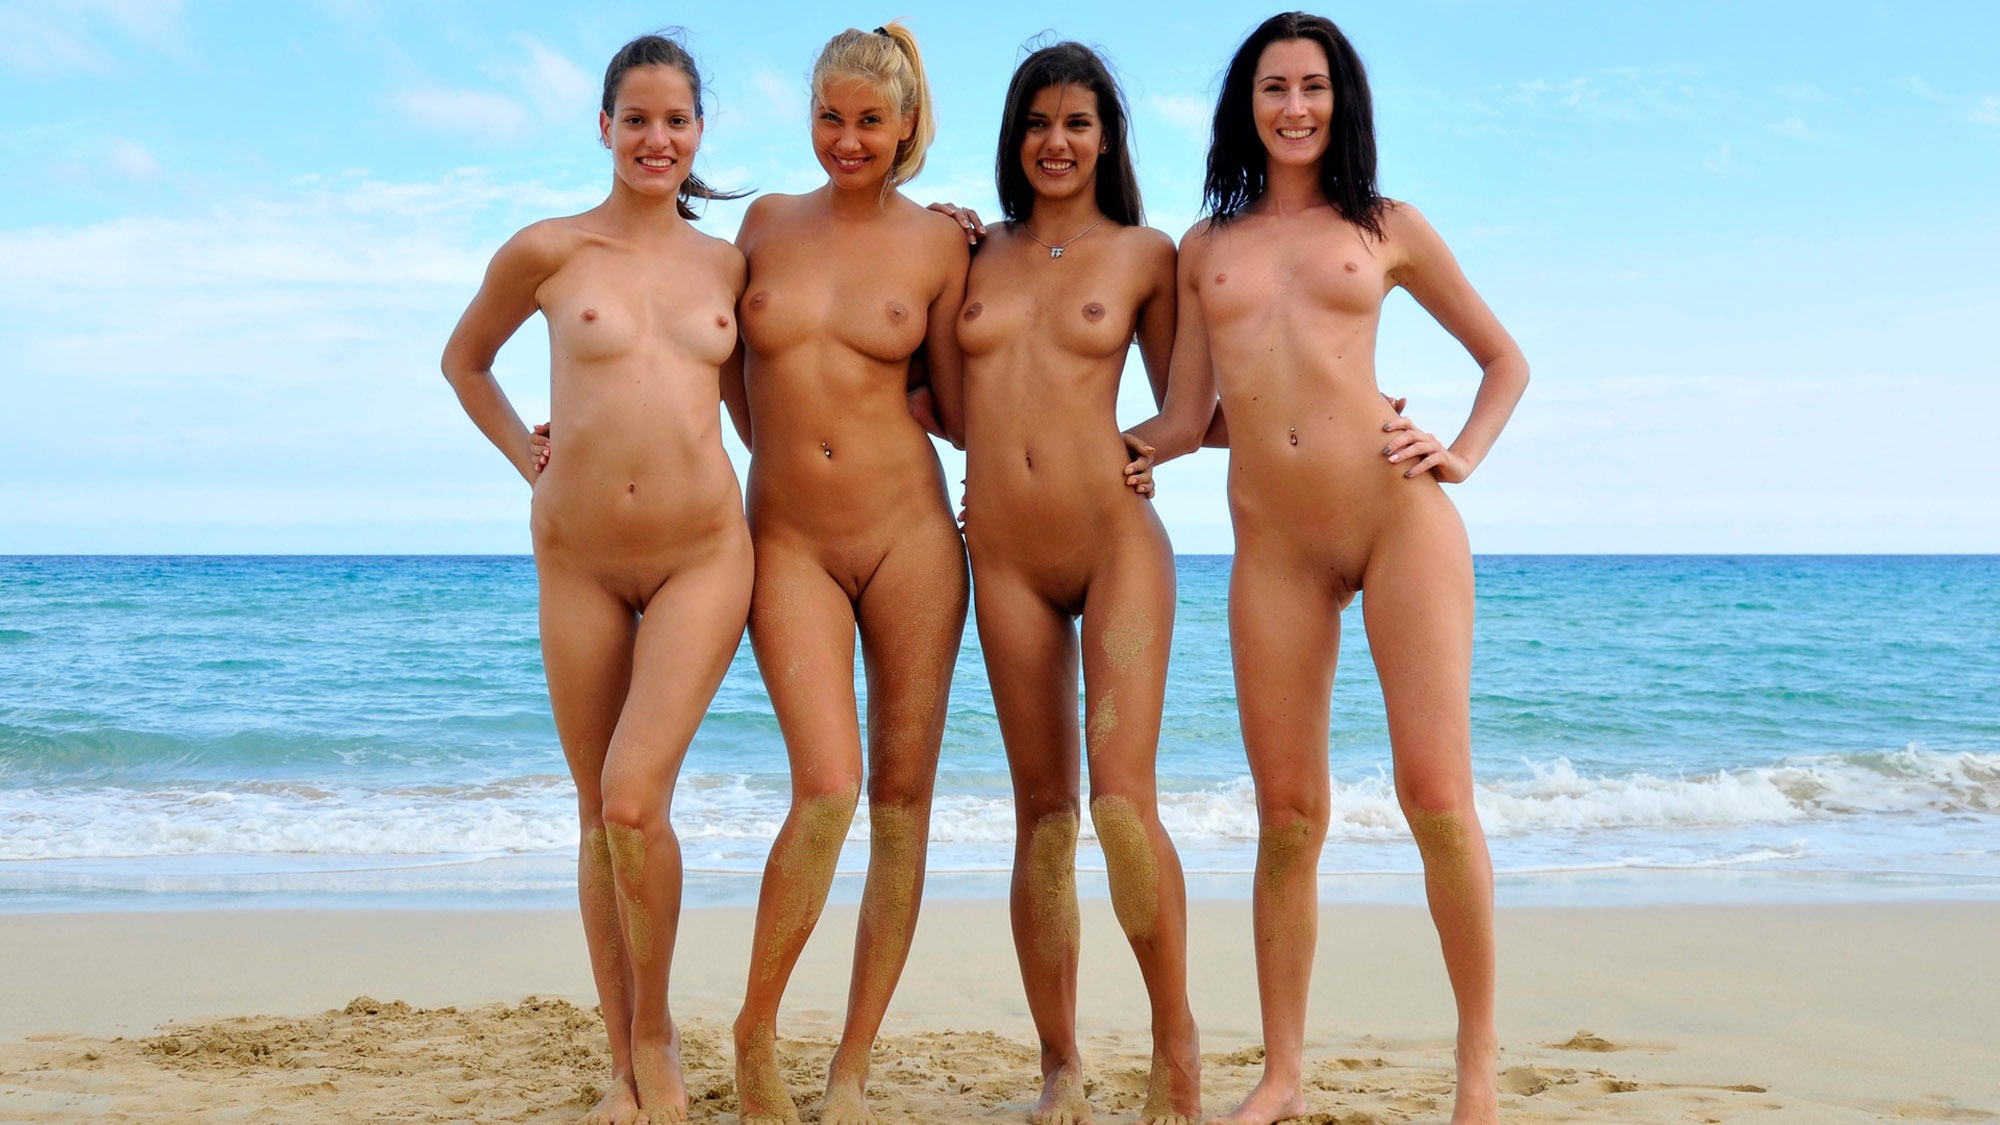 Girls naked on beach hawaii — pic 9